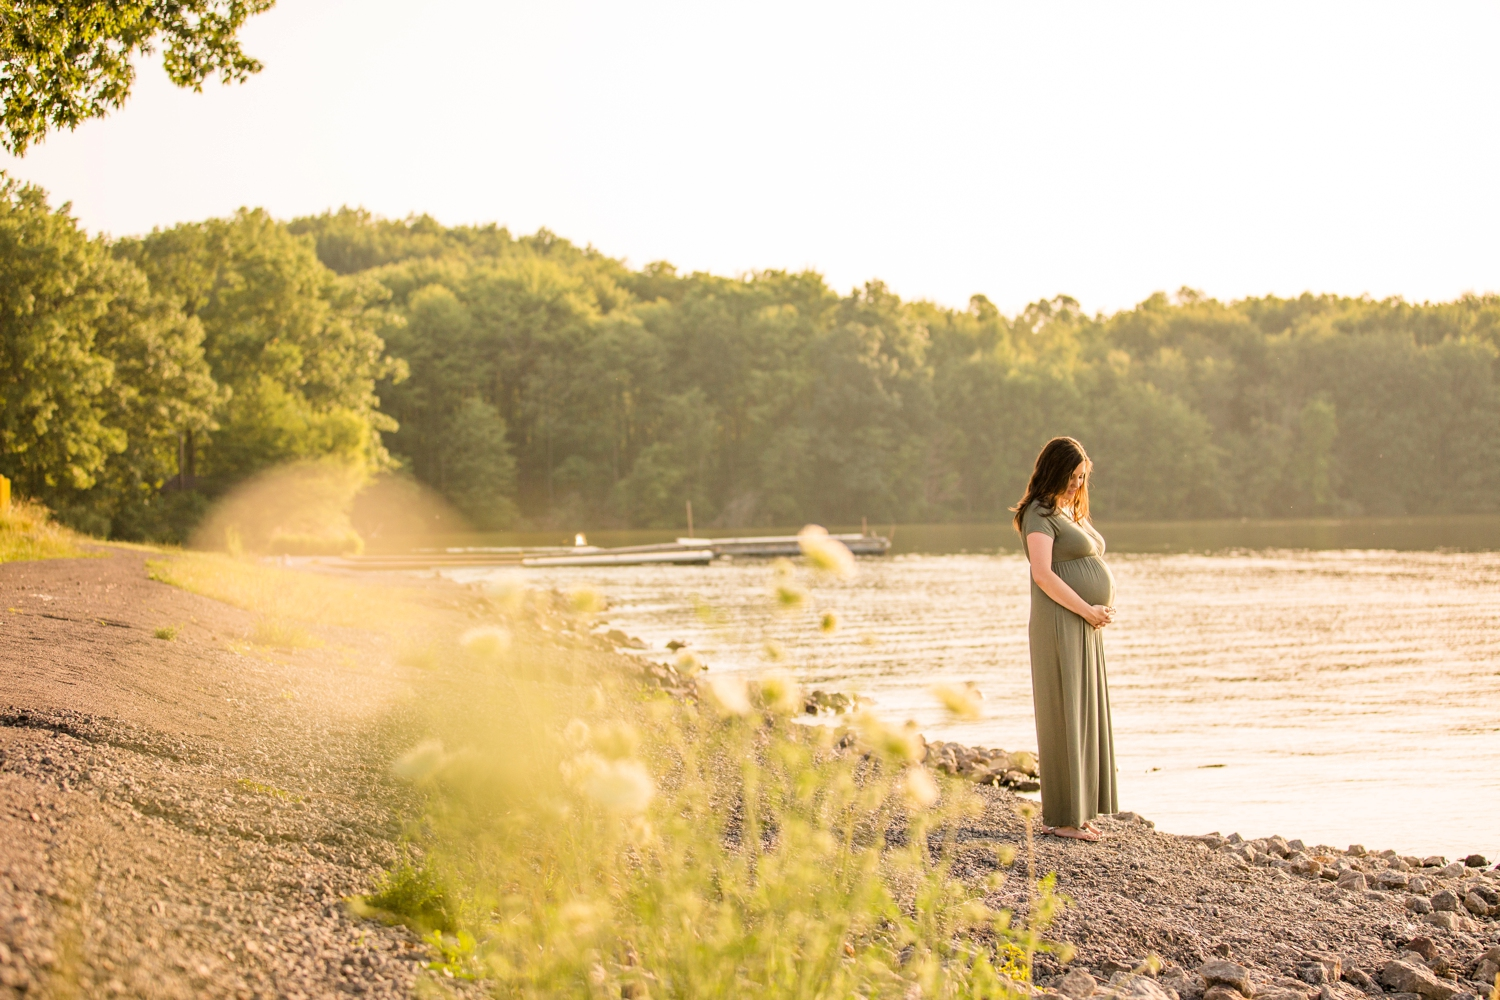 moraine state park family photos, pittsburgh family photographer, family photo outfit ideas, pittsburgh maternity photographer